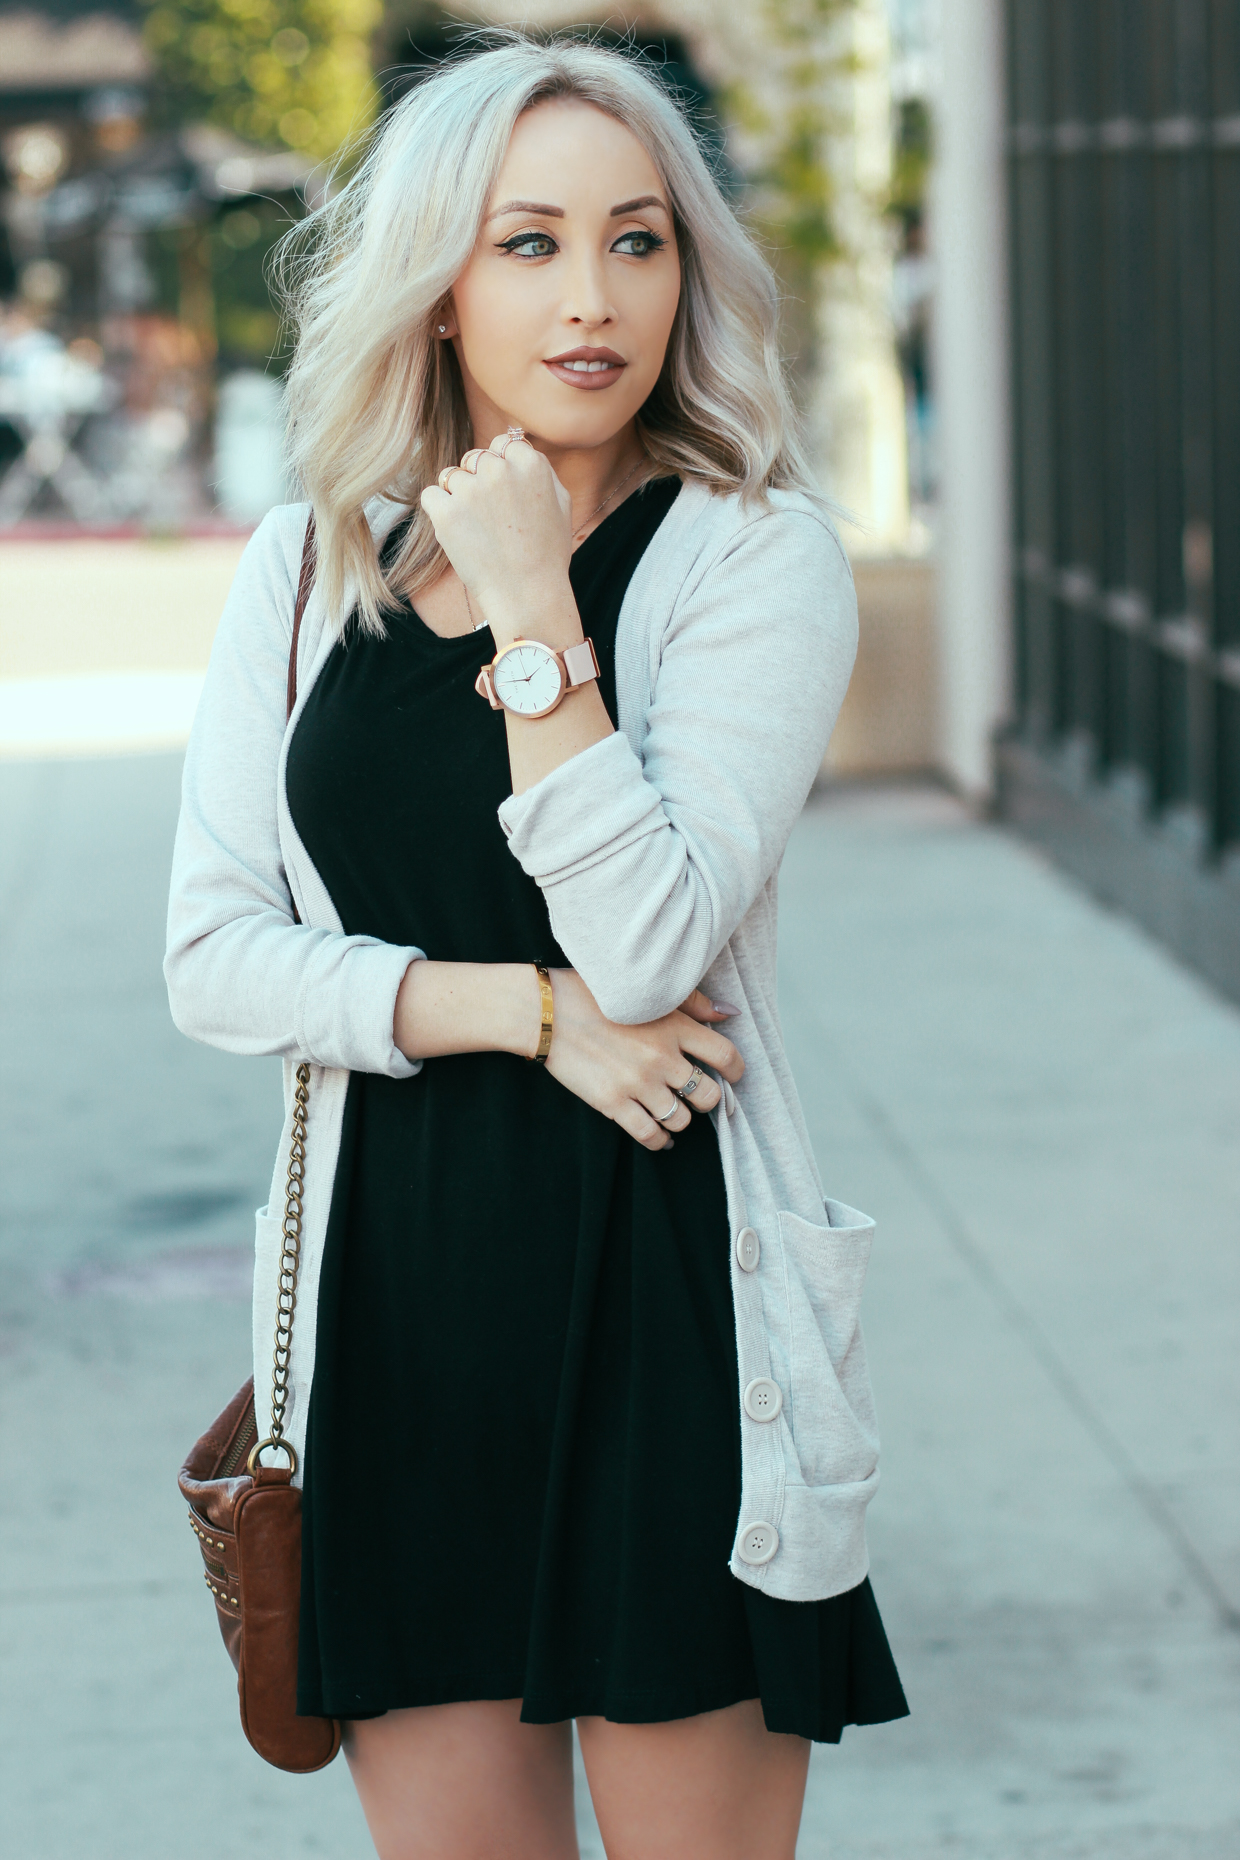 Blondie in the City | Little Black Dress and a Light Sweater | Watch: @the_fifth